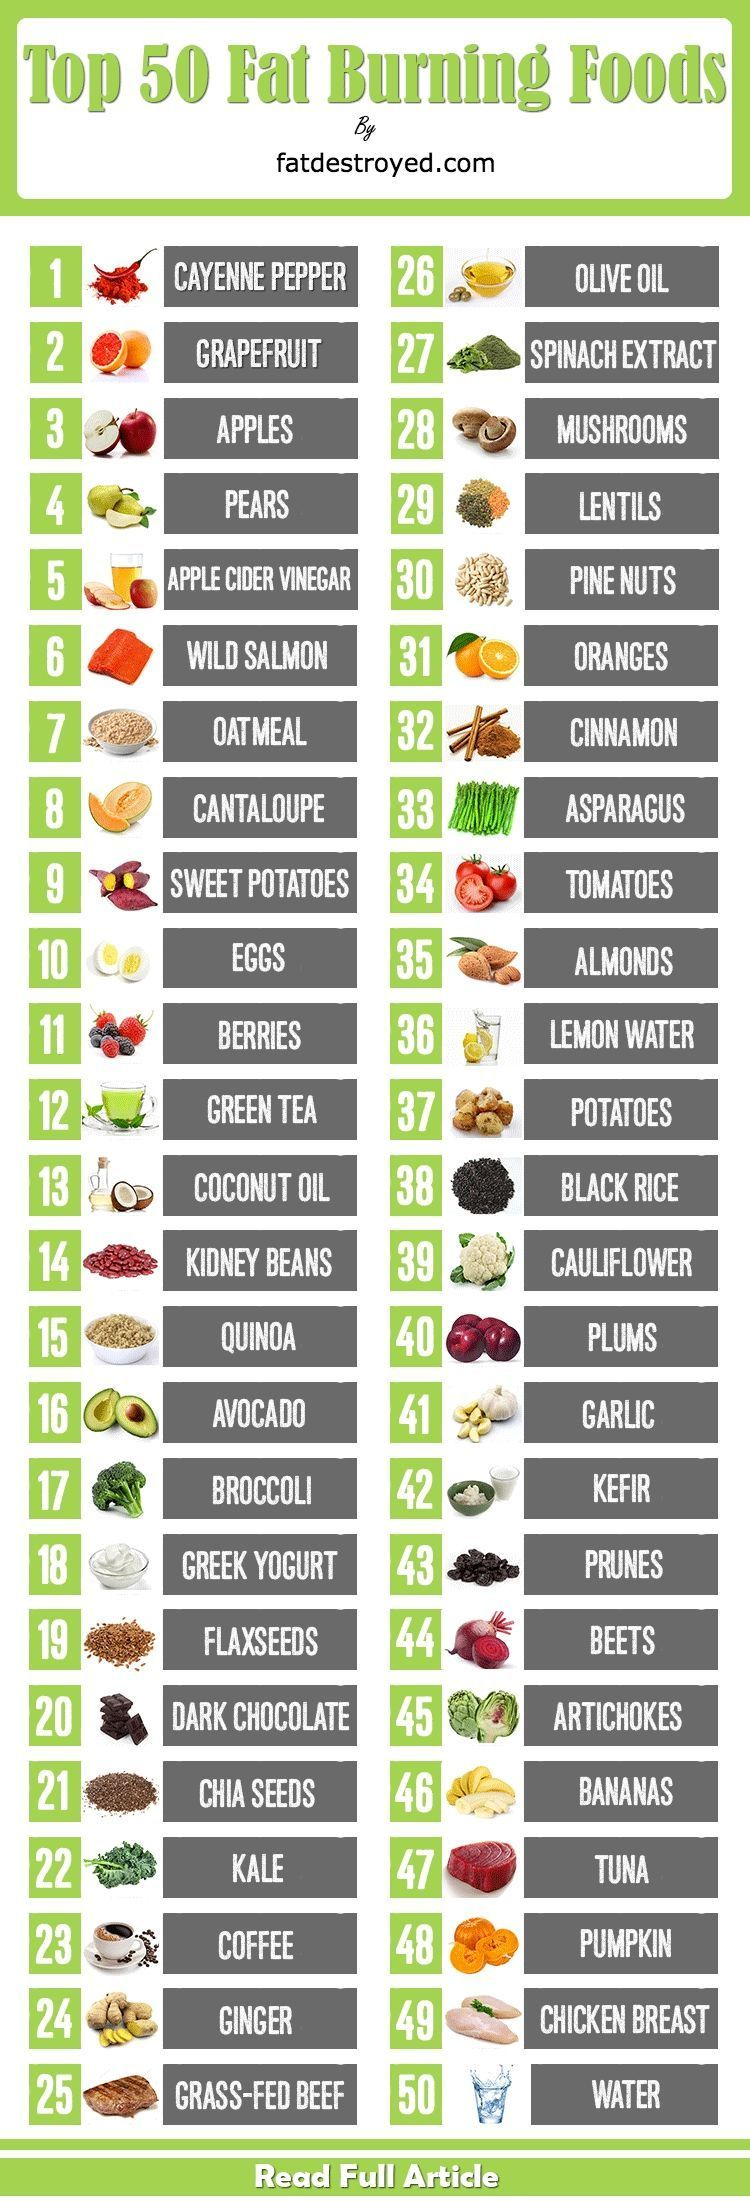 Fast weight loss tips without exercise #fatlosstips <=   healthy way to lose weight fast and easy#we...